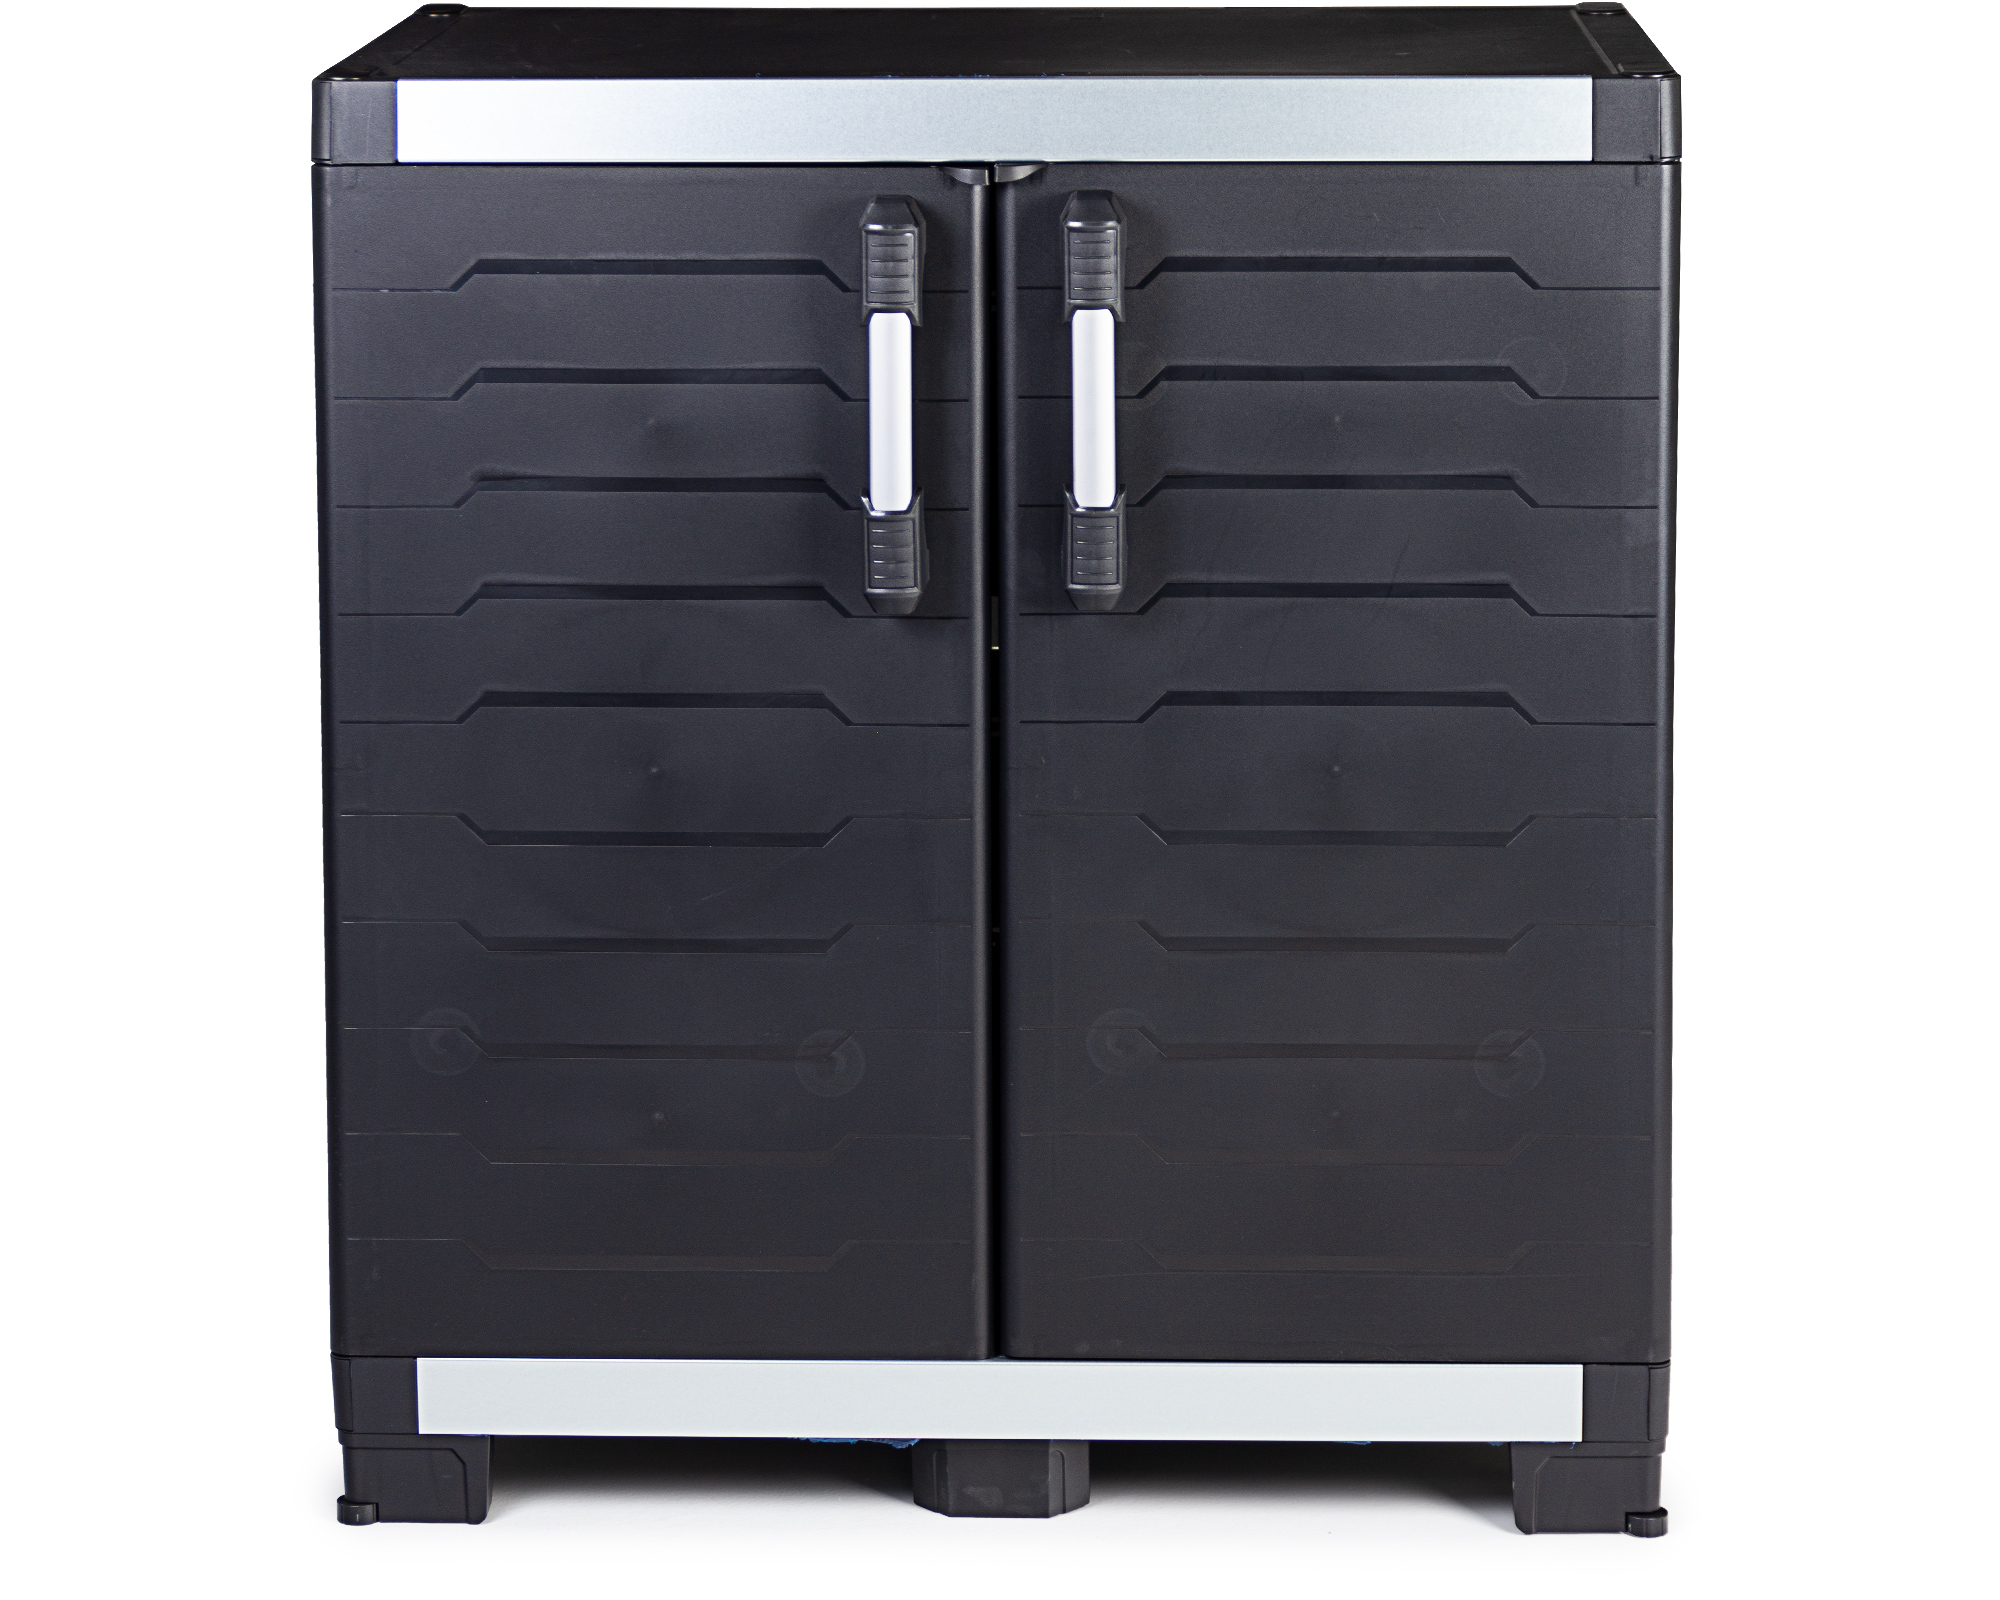 ondis24 werkstattschrank kunststoff powercab xxl g nstig online kaufen. Black Bedroom Furniture Sets. Home Design Ideas